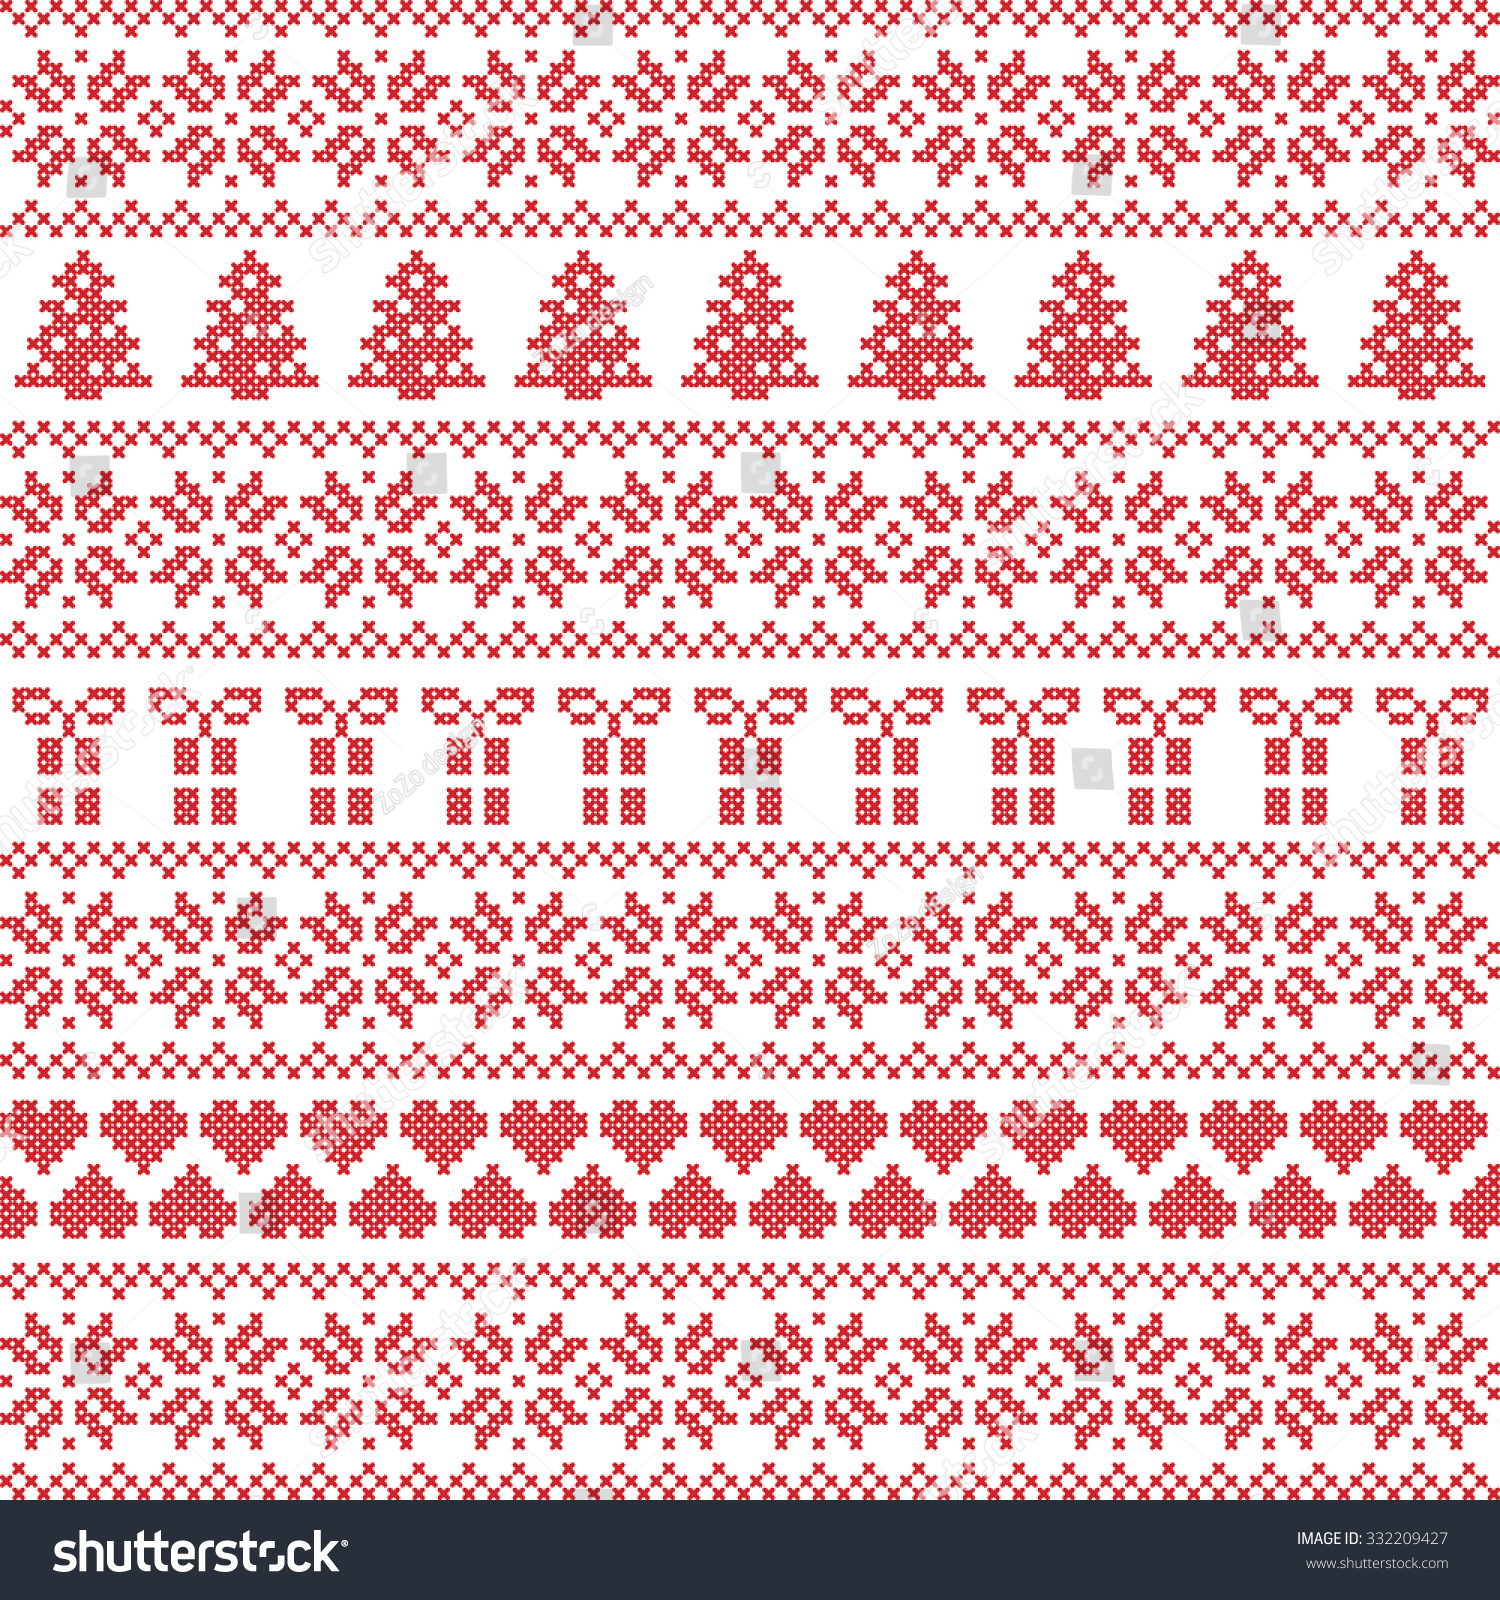 Seamless fir tree scandinavian pattern textile background wrapping - Scandinavian Style Nordic Winter Sweater Stitch Knit Pattern Including Star Xmas Tree